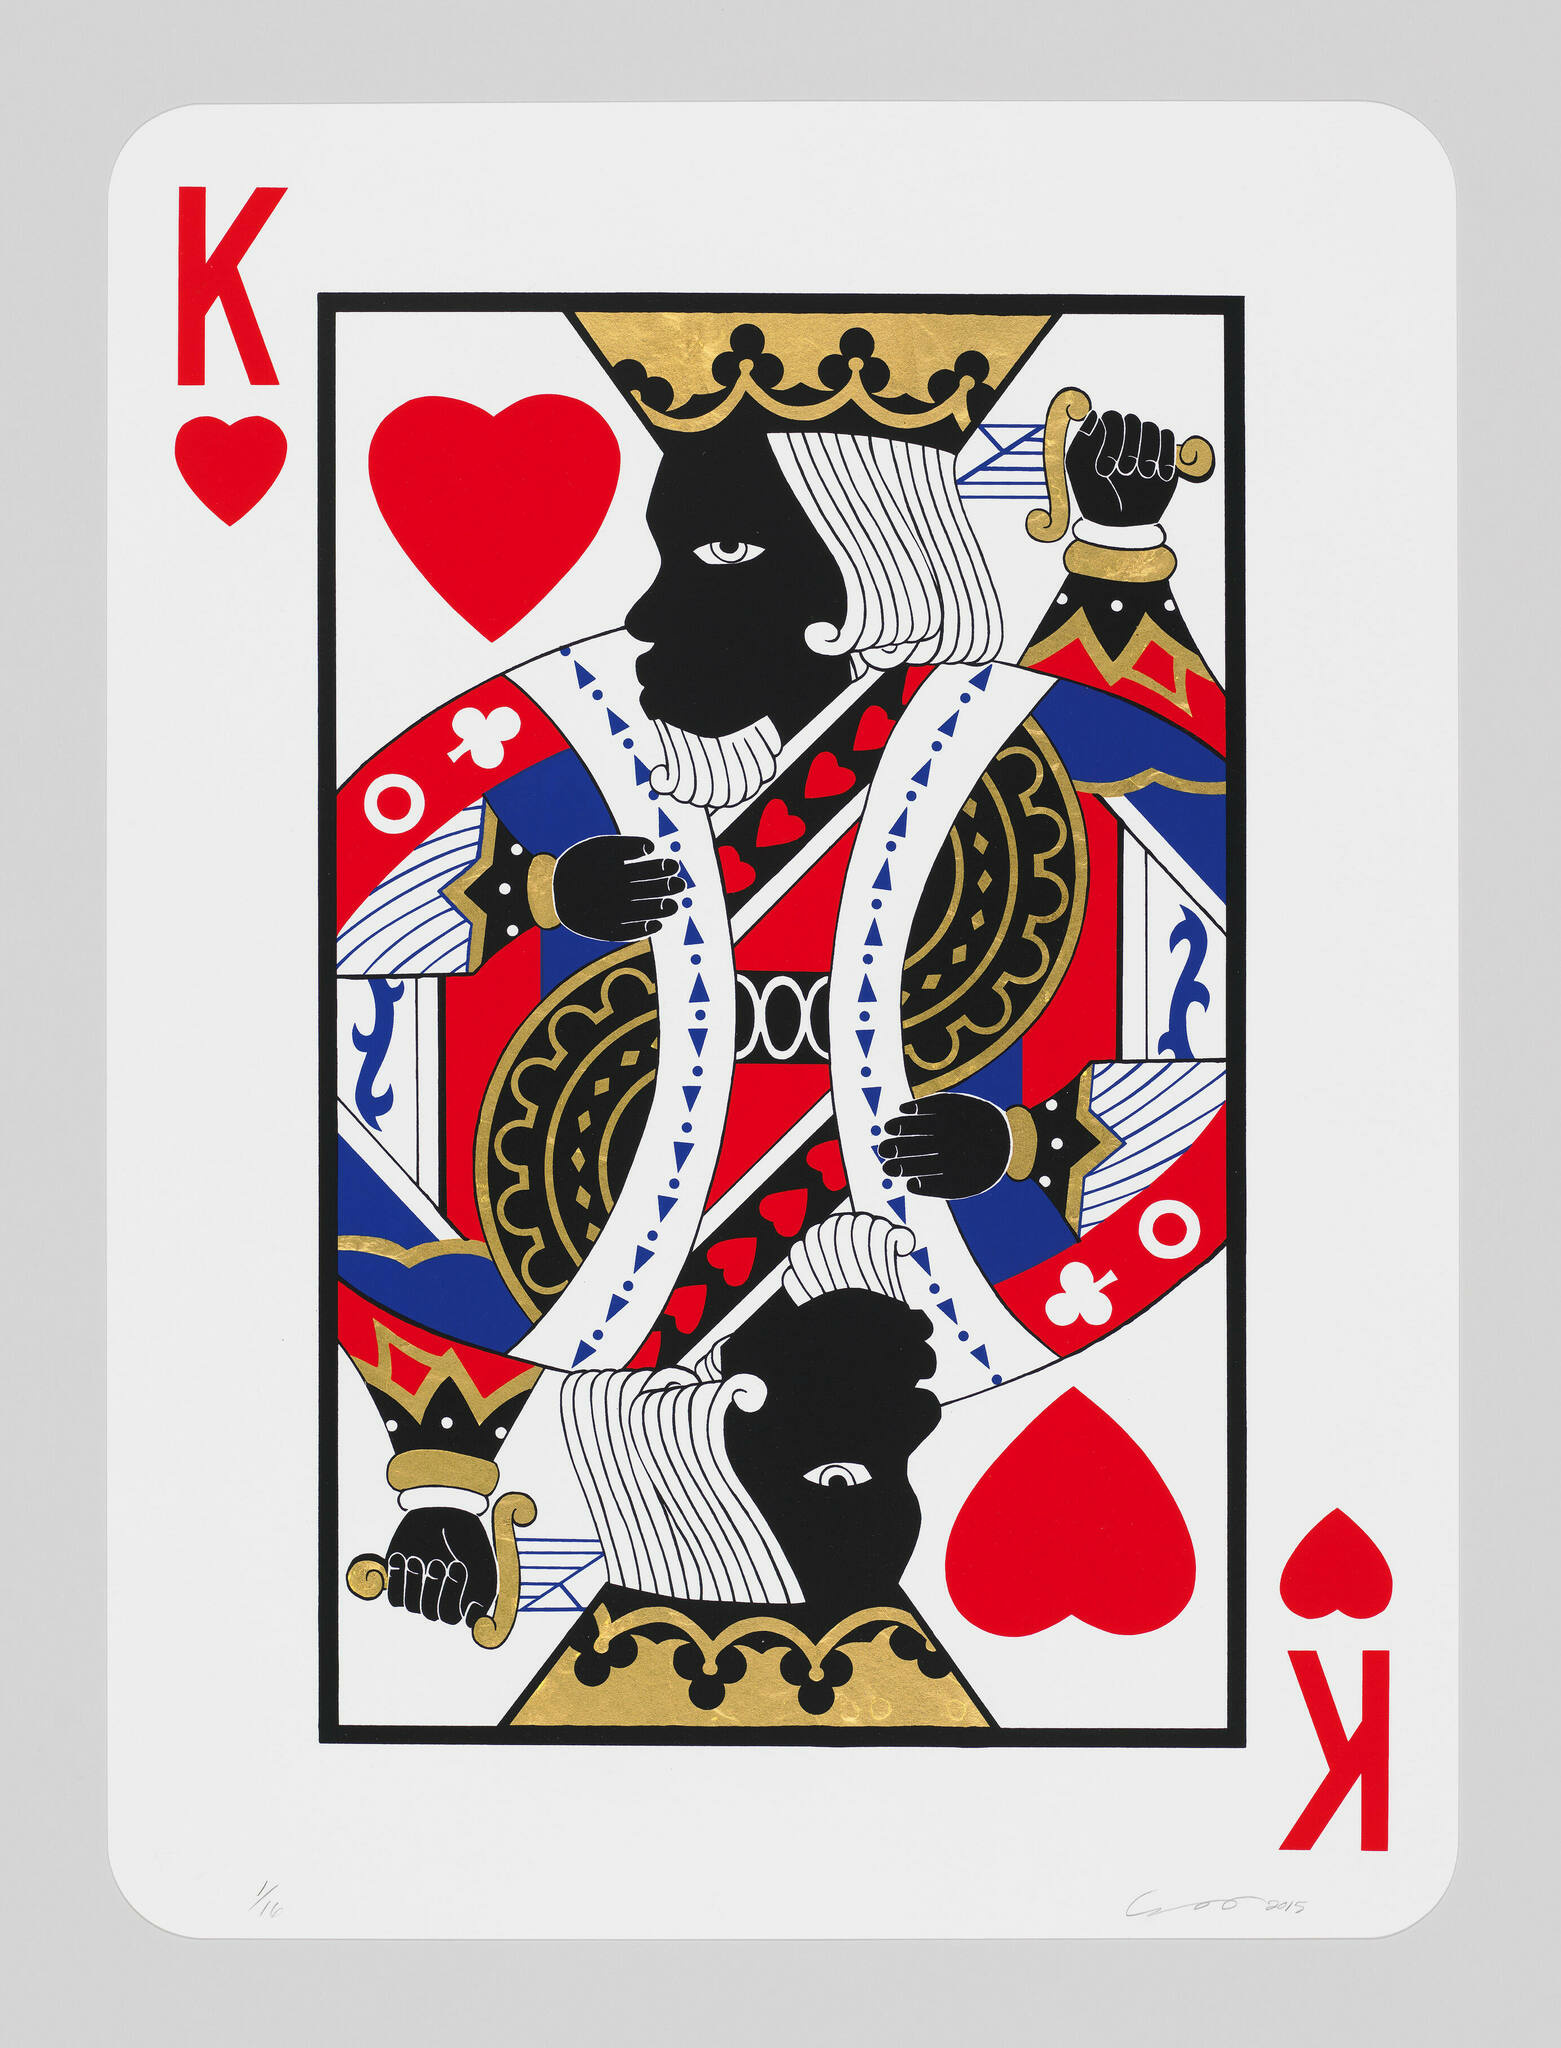 As in a deck of cards, this is the king of hearts card. The double faces are painted black.